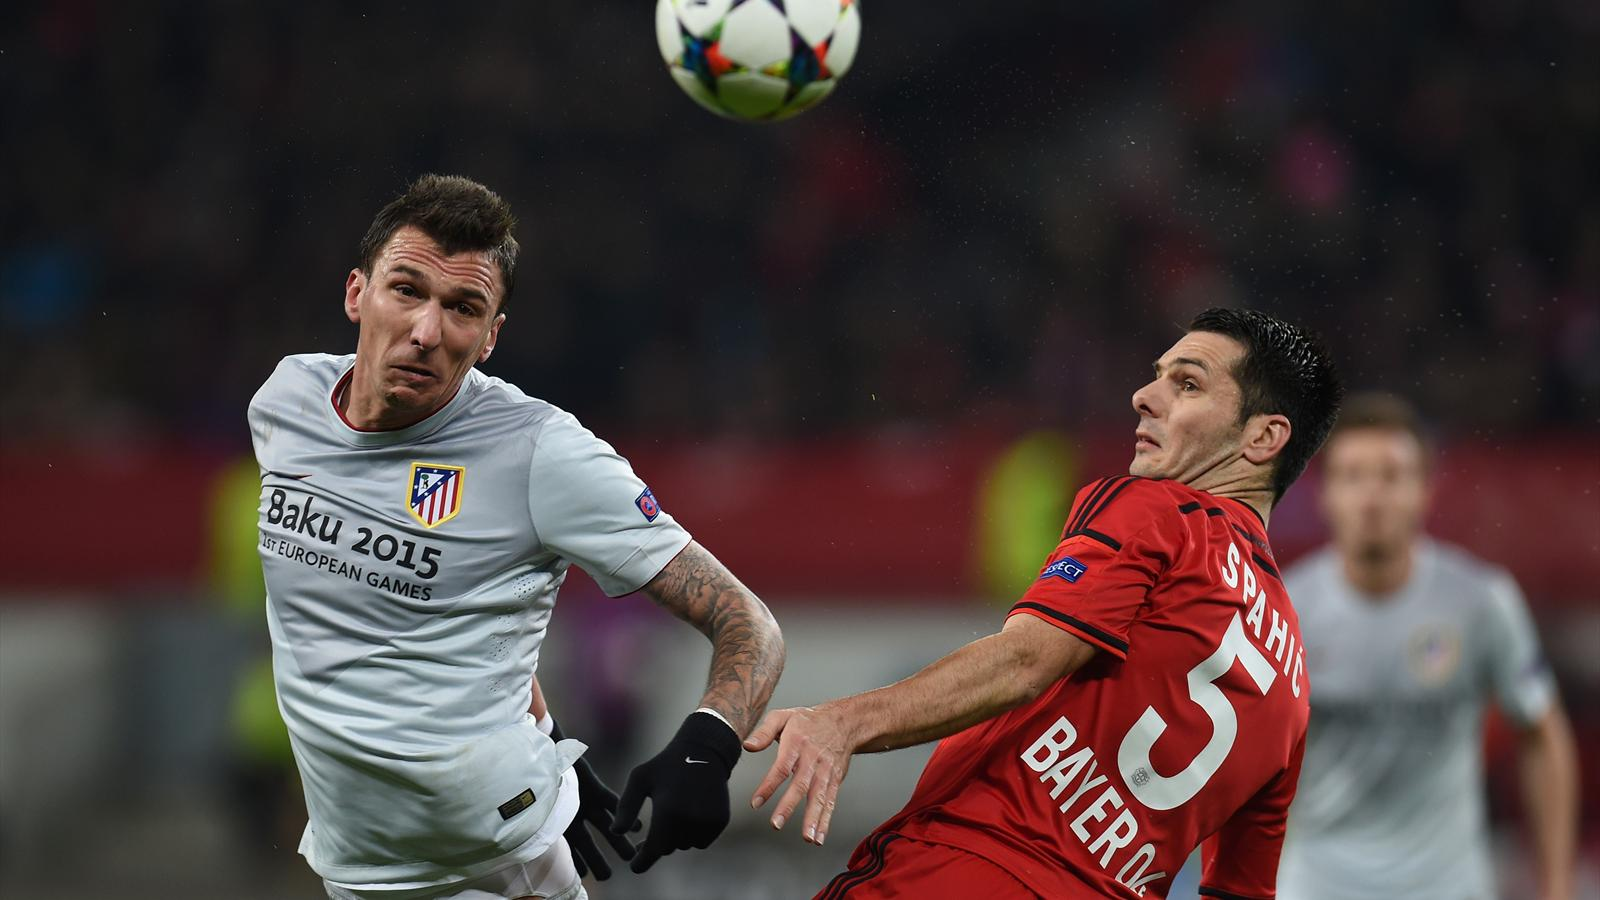 Match Atletico Madrid Bayer Leverkusen en direct live streaming